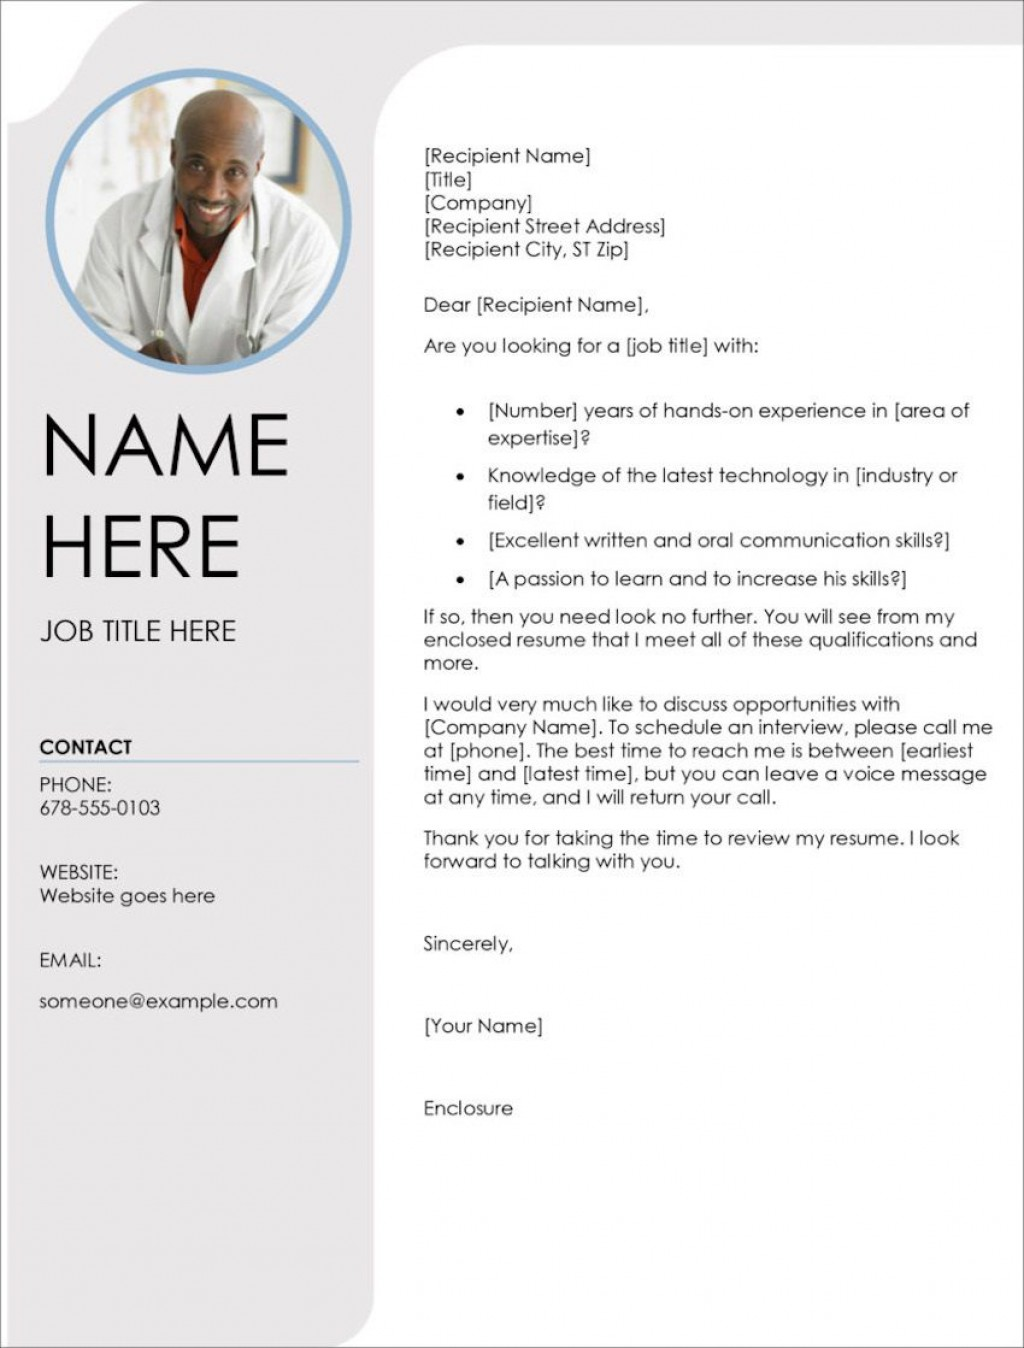 007 Archaicawful Microsoft Cover Letter Template Example  Templates Free Resume Word Download 2010 PageLarge